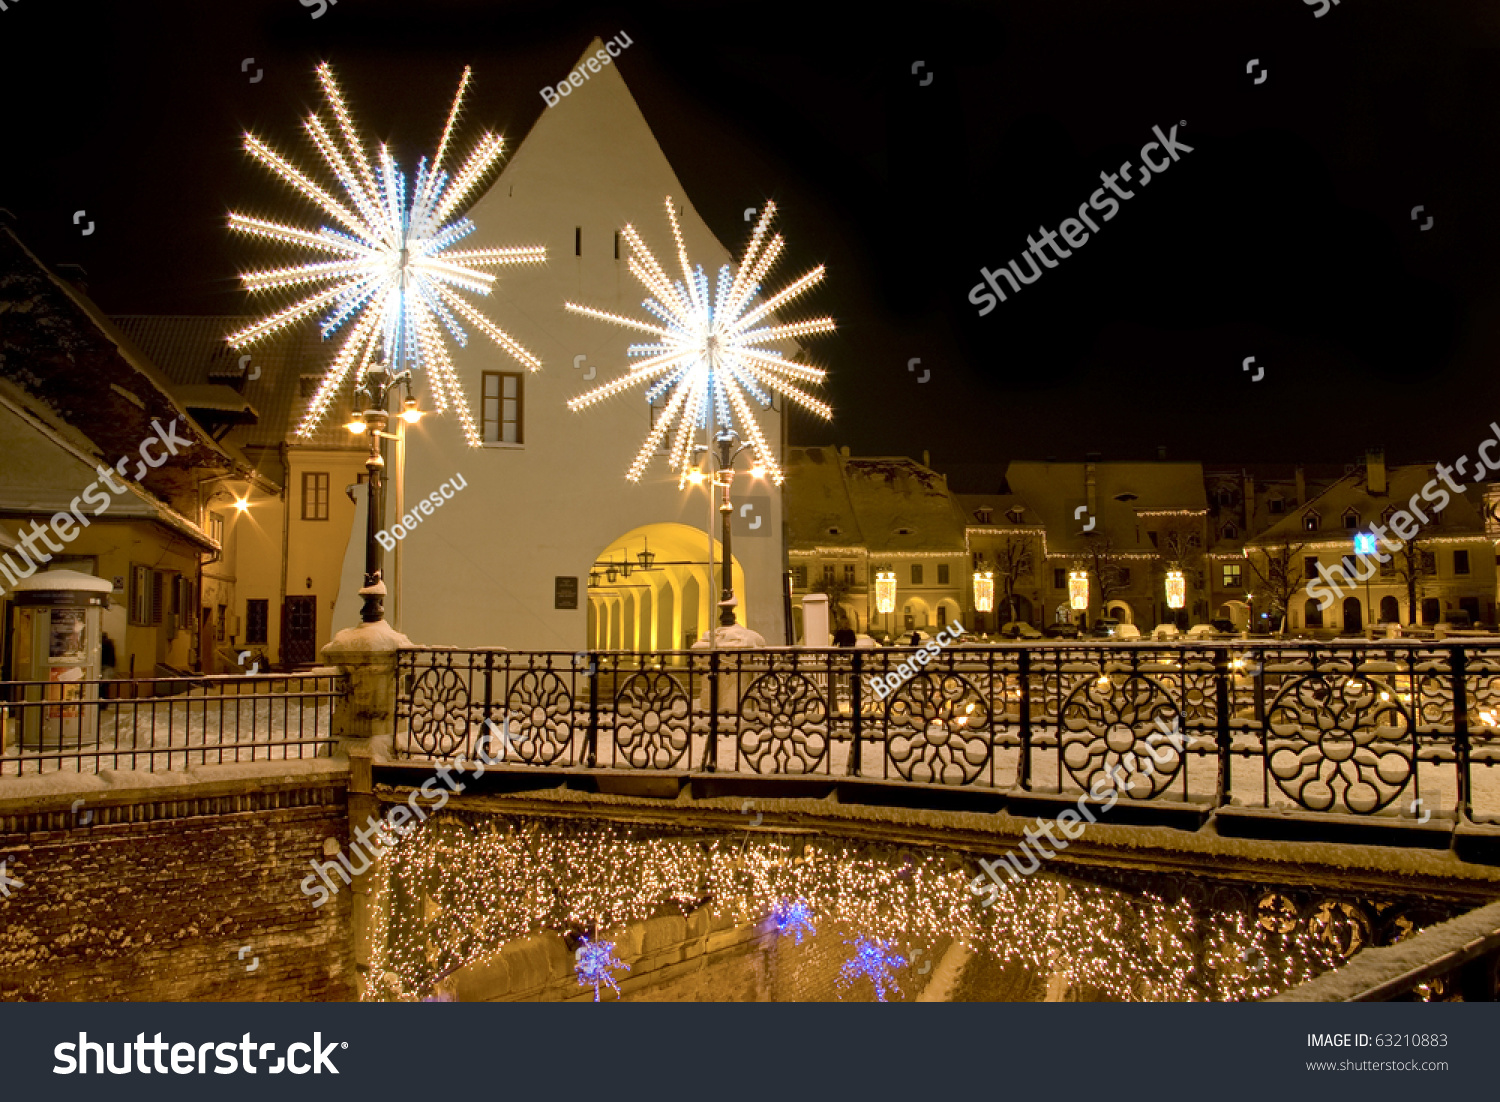 winter snow christmas lights on street and bridge in sibiu in winter long exposure image by - Long Christmas Lights